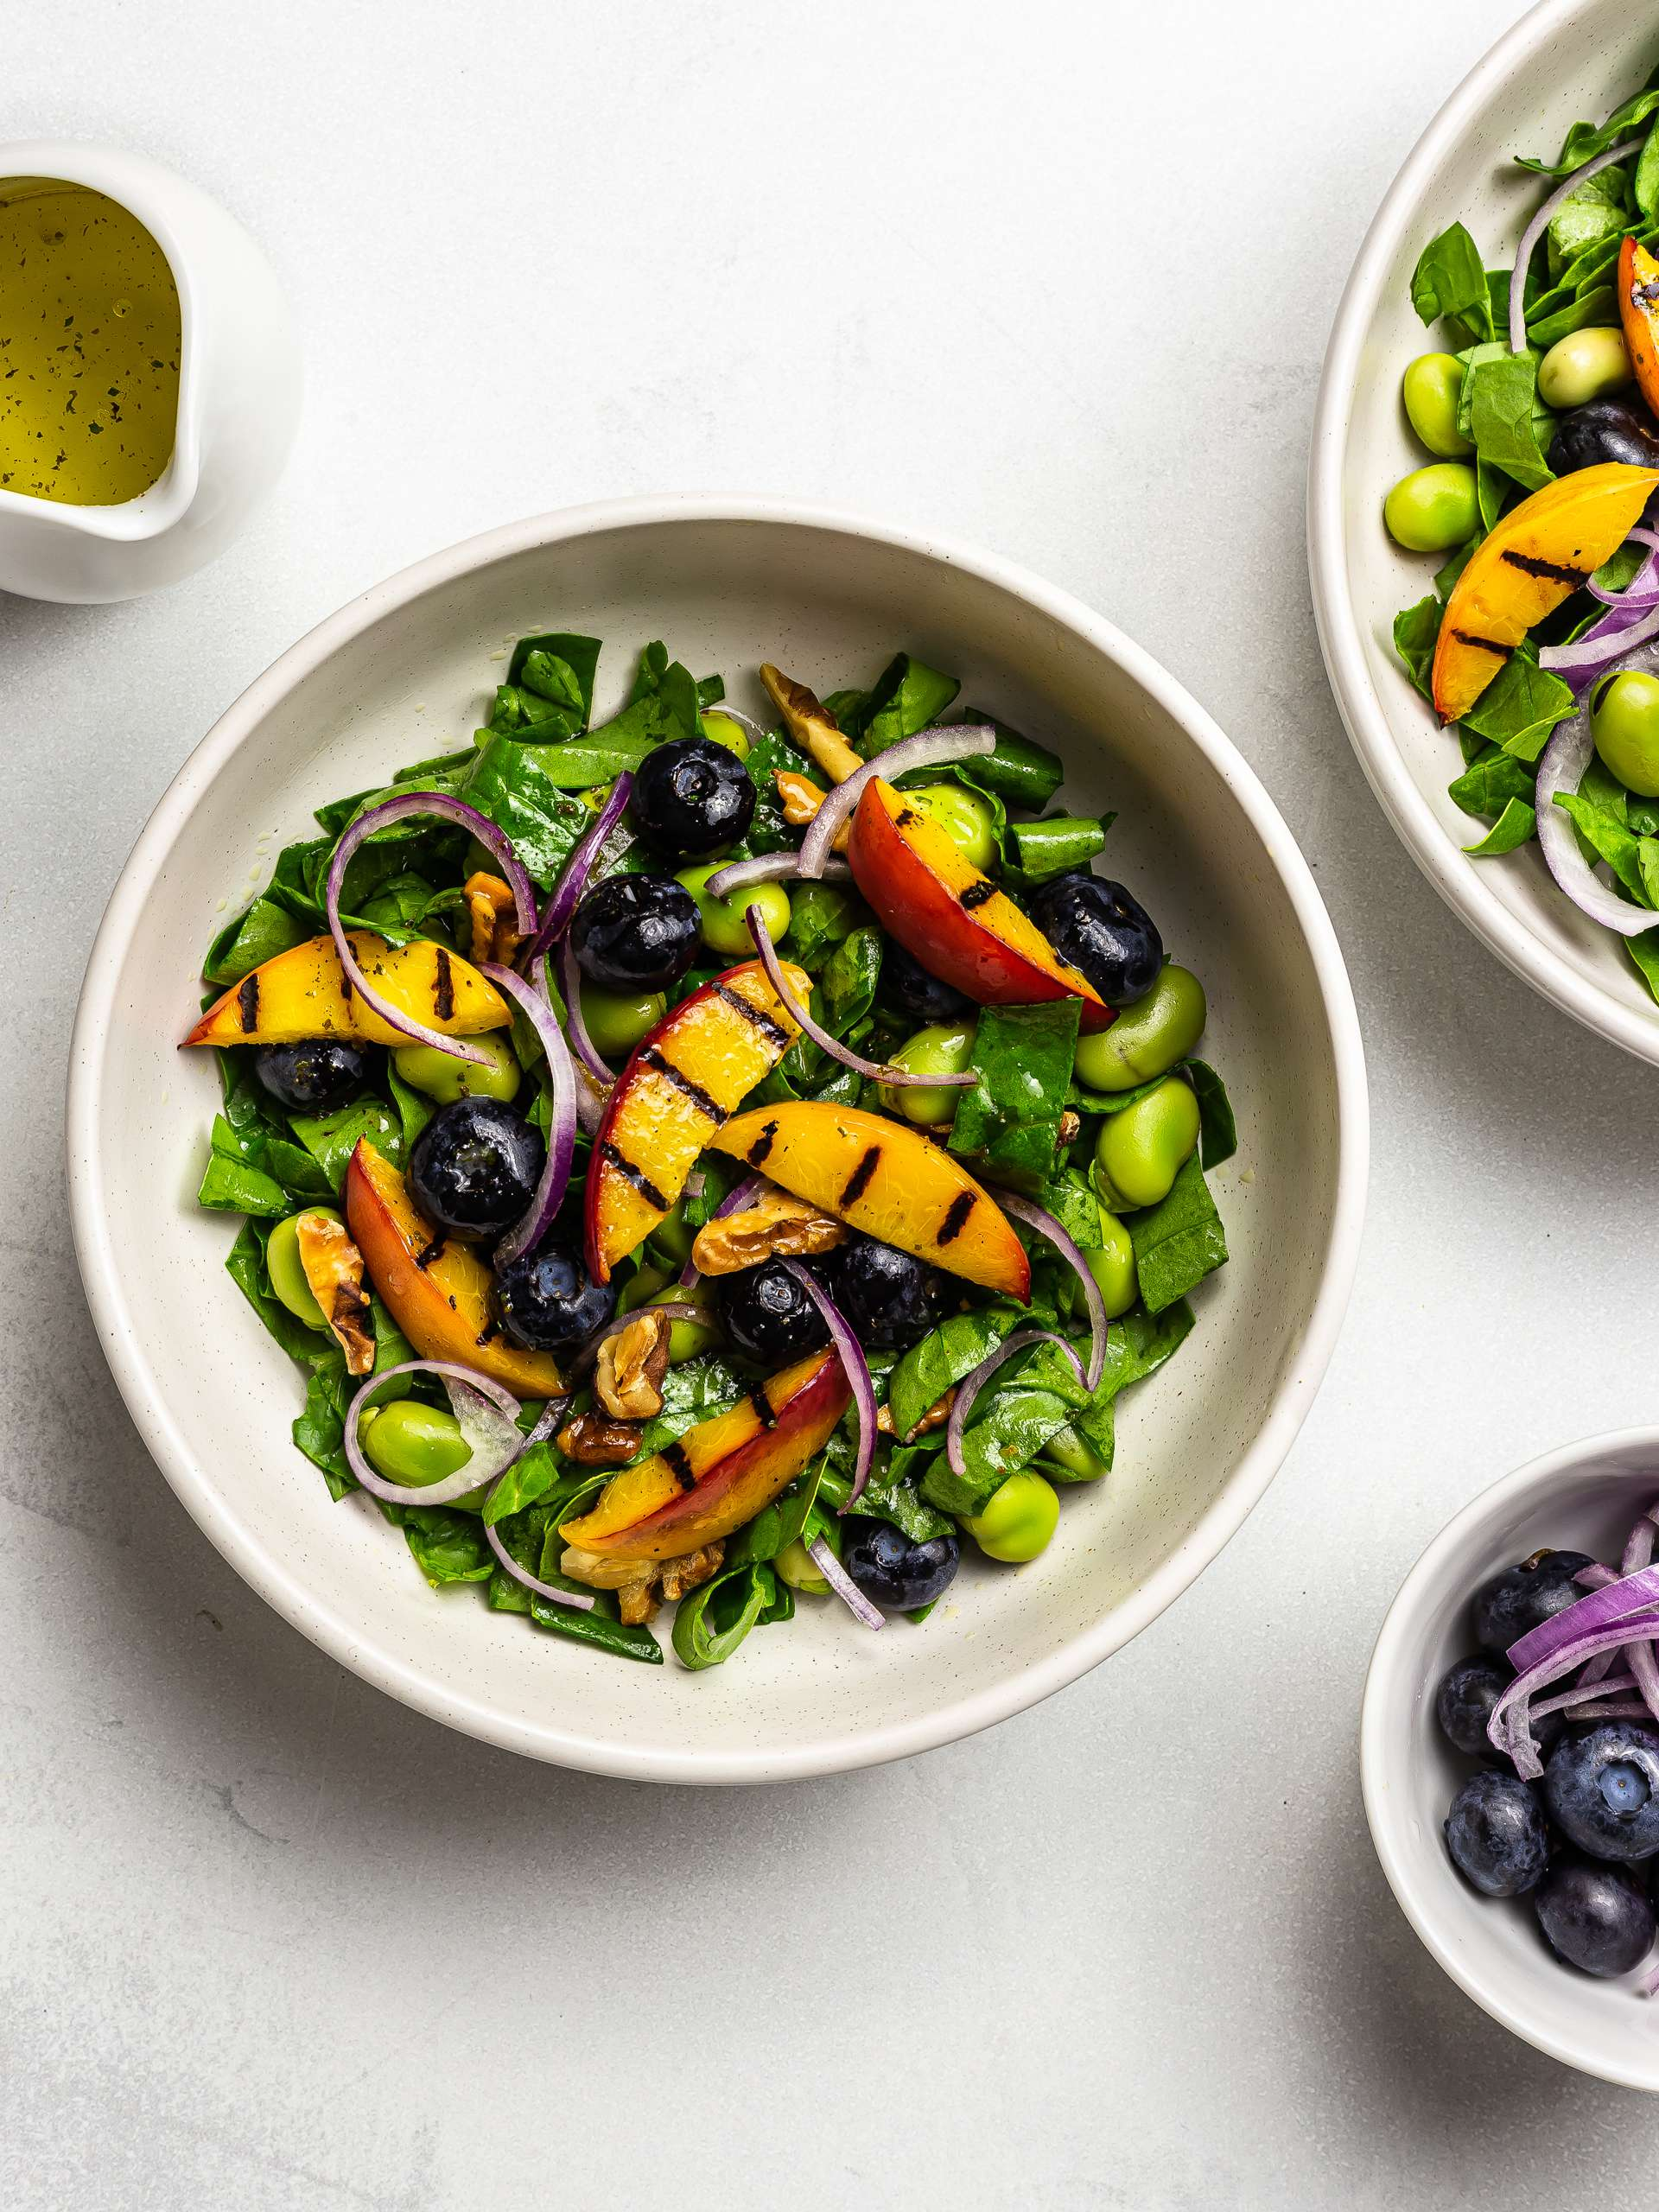 Vegan Peach and Blueberry Spinach Salad